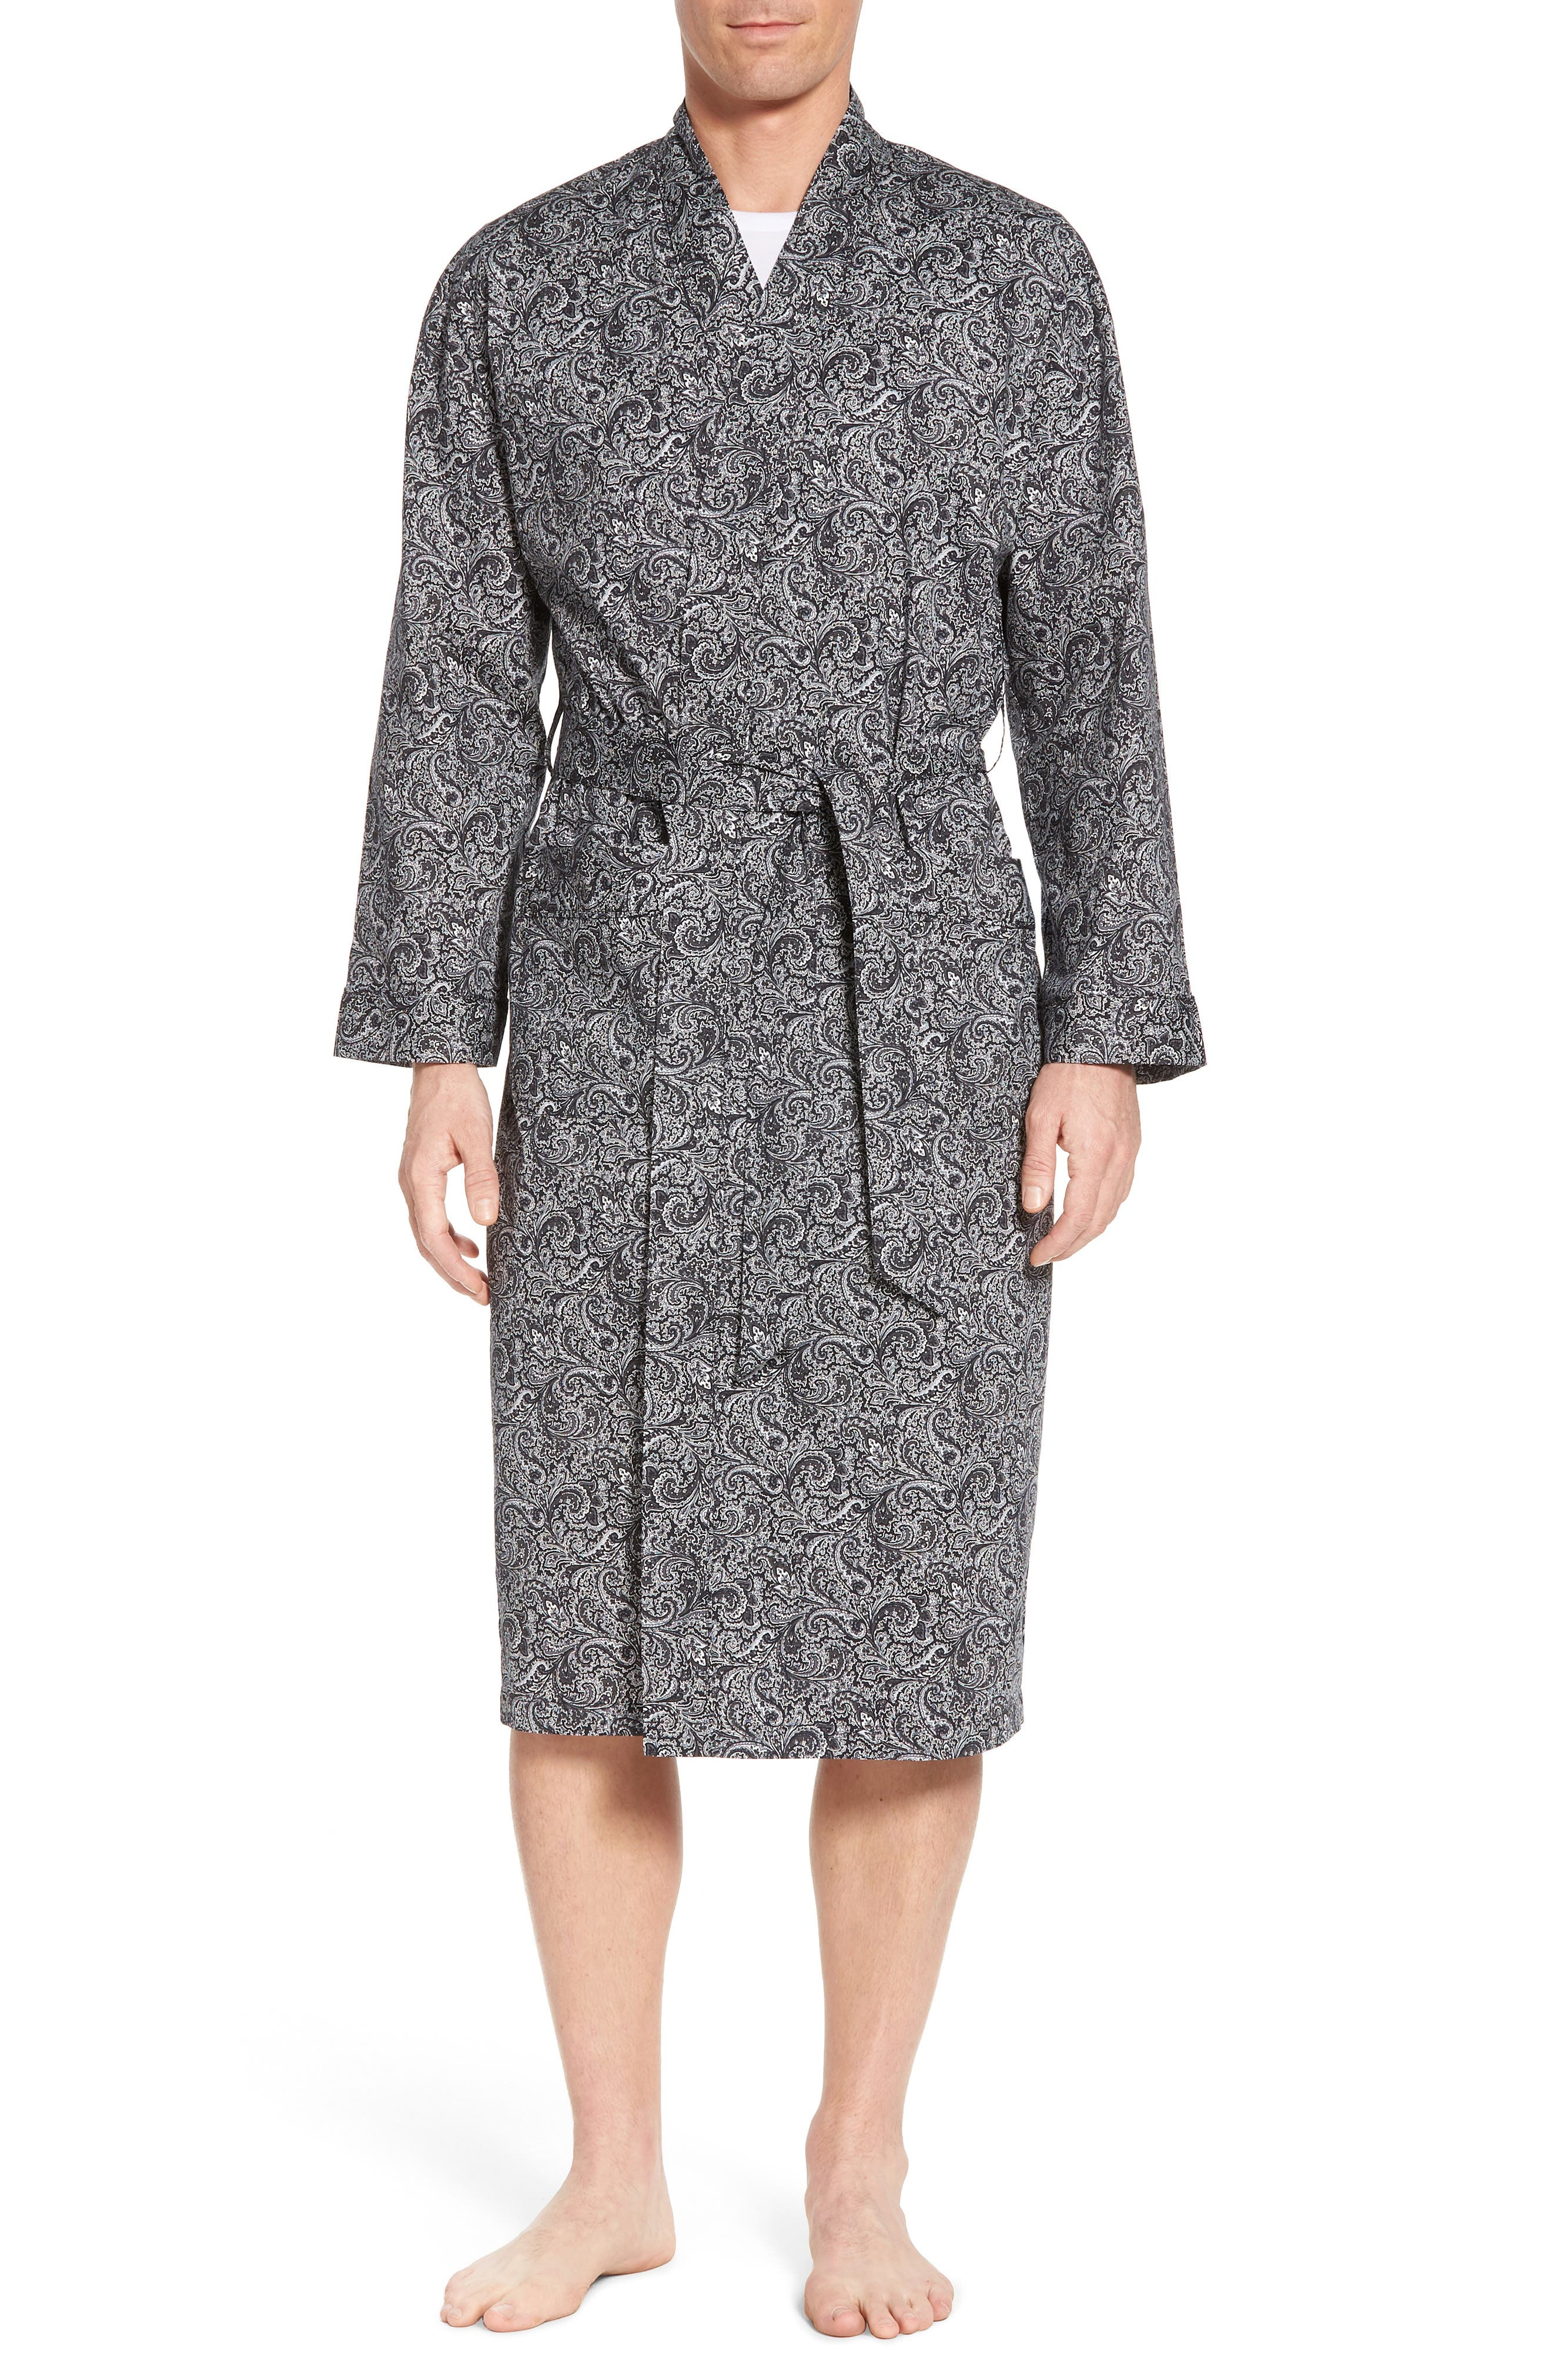 Starling Robe,                             Main thumbnail 1, color,                             Black Paisley